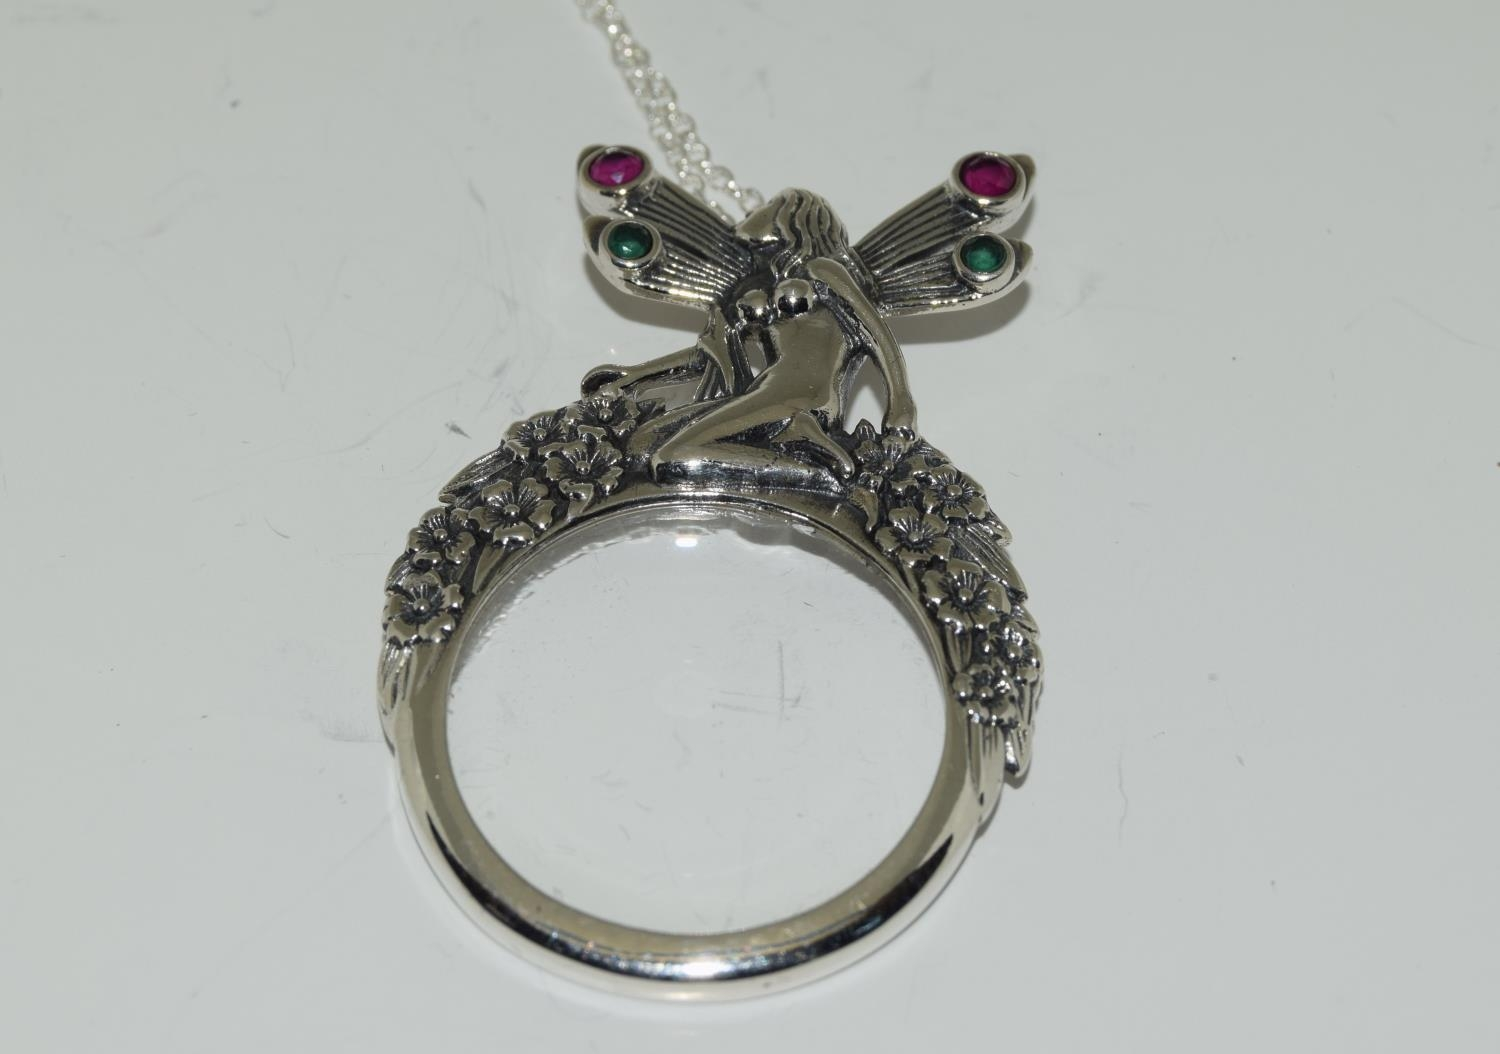 A silver magnifying glass pendant necklace with fairy finial set with Rubies.